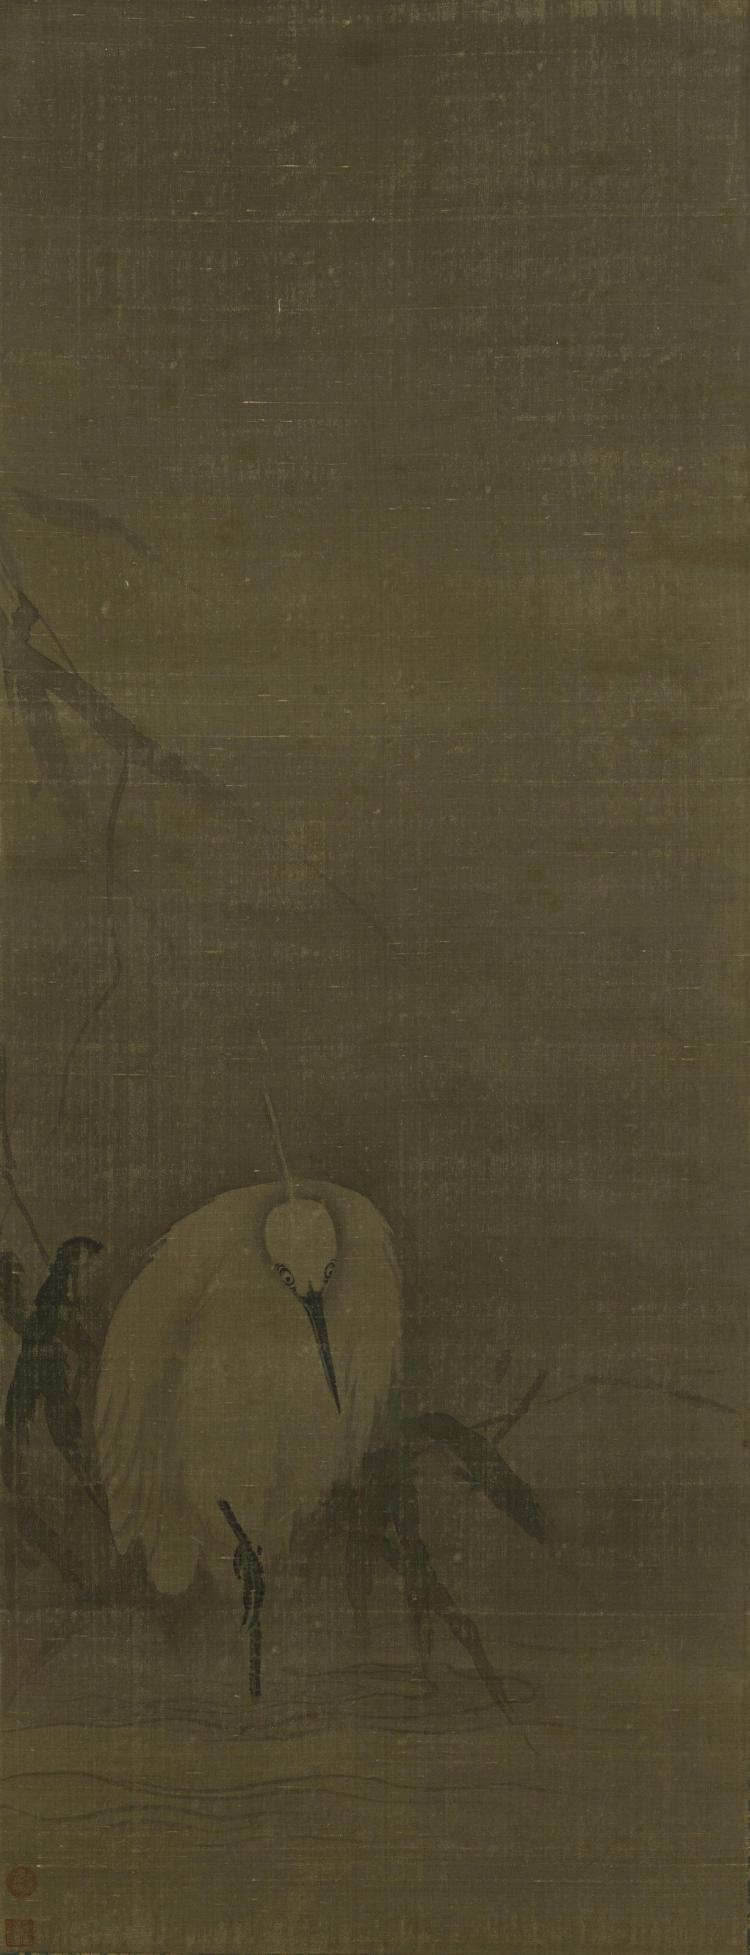 Attributed to Liang Kai (active c 1172-1204) Chinese Art from the Scholar's Studio